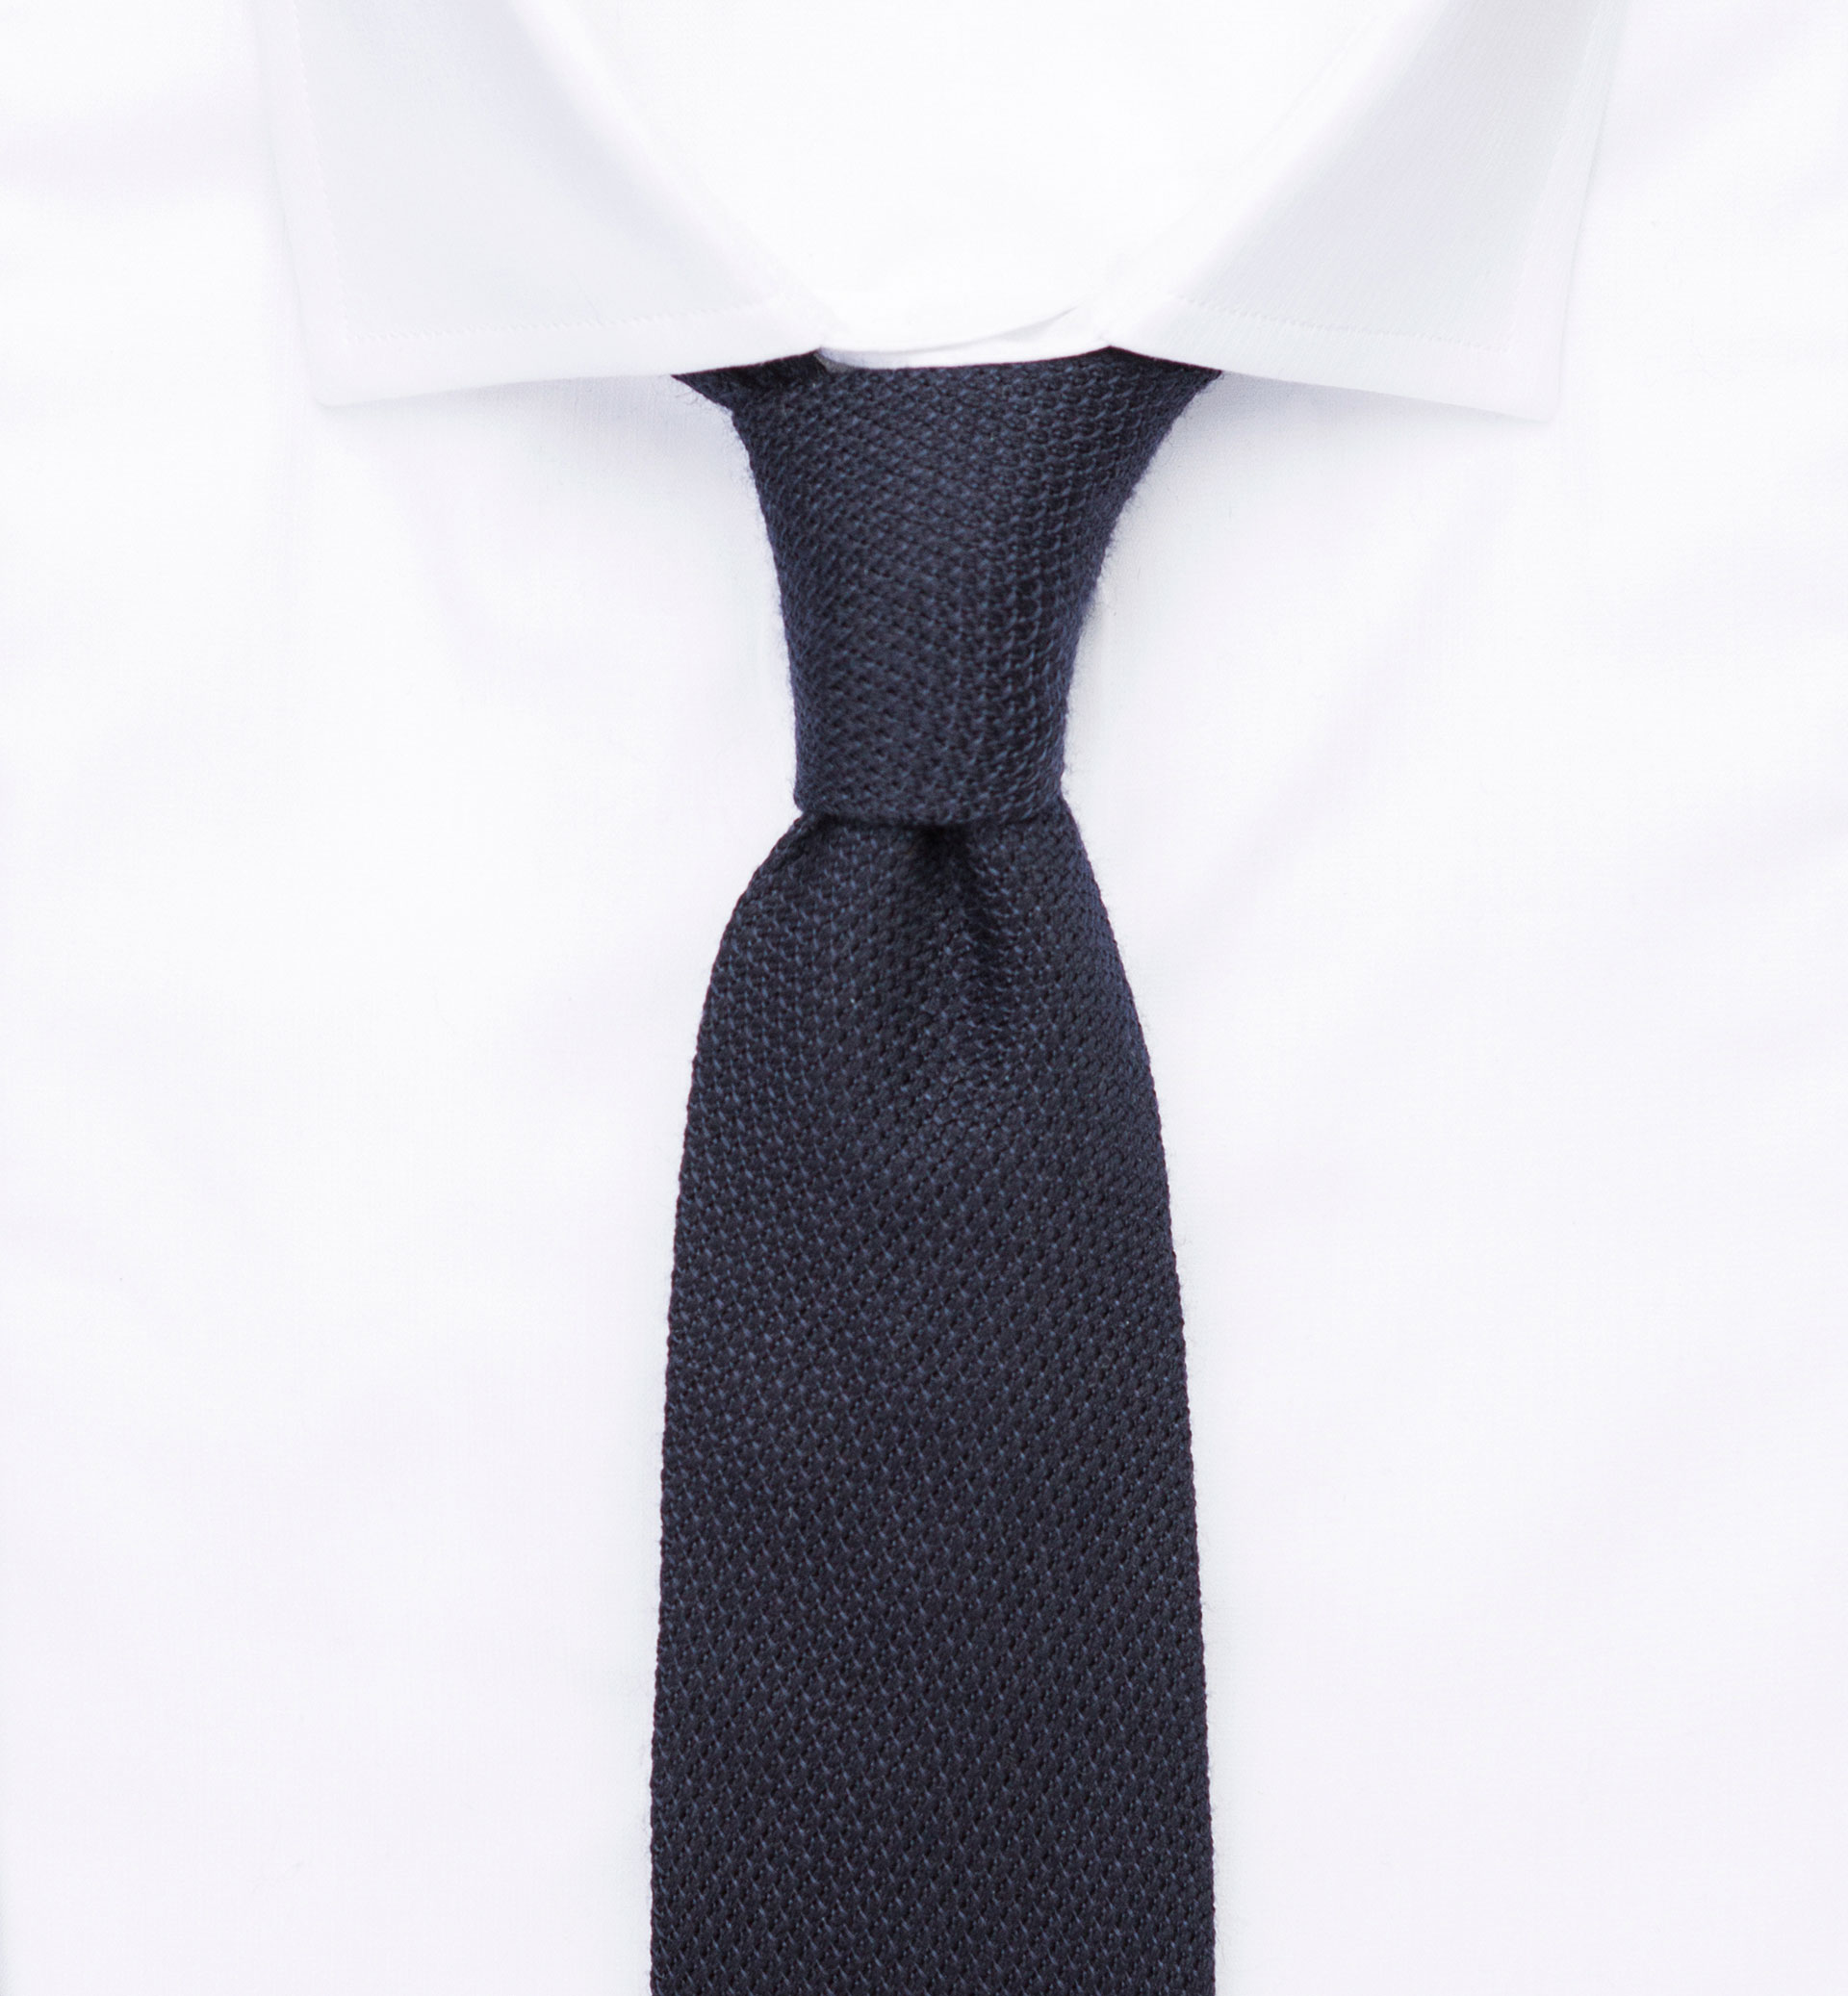 PERSONAL TAILORING PLAIN NAVY BLUE TEXTURED TIE